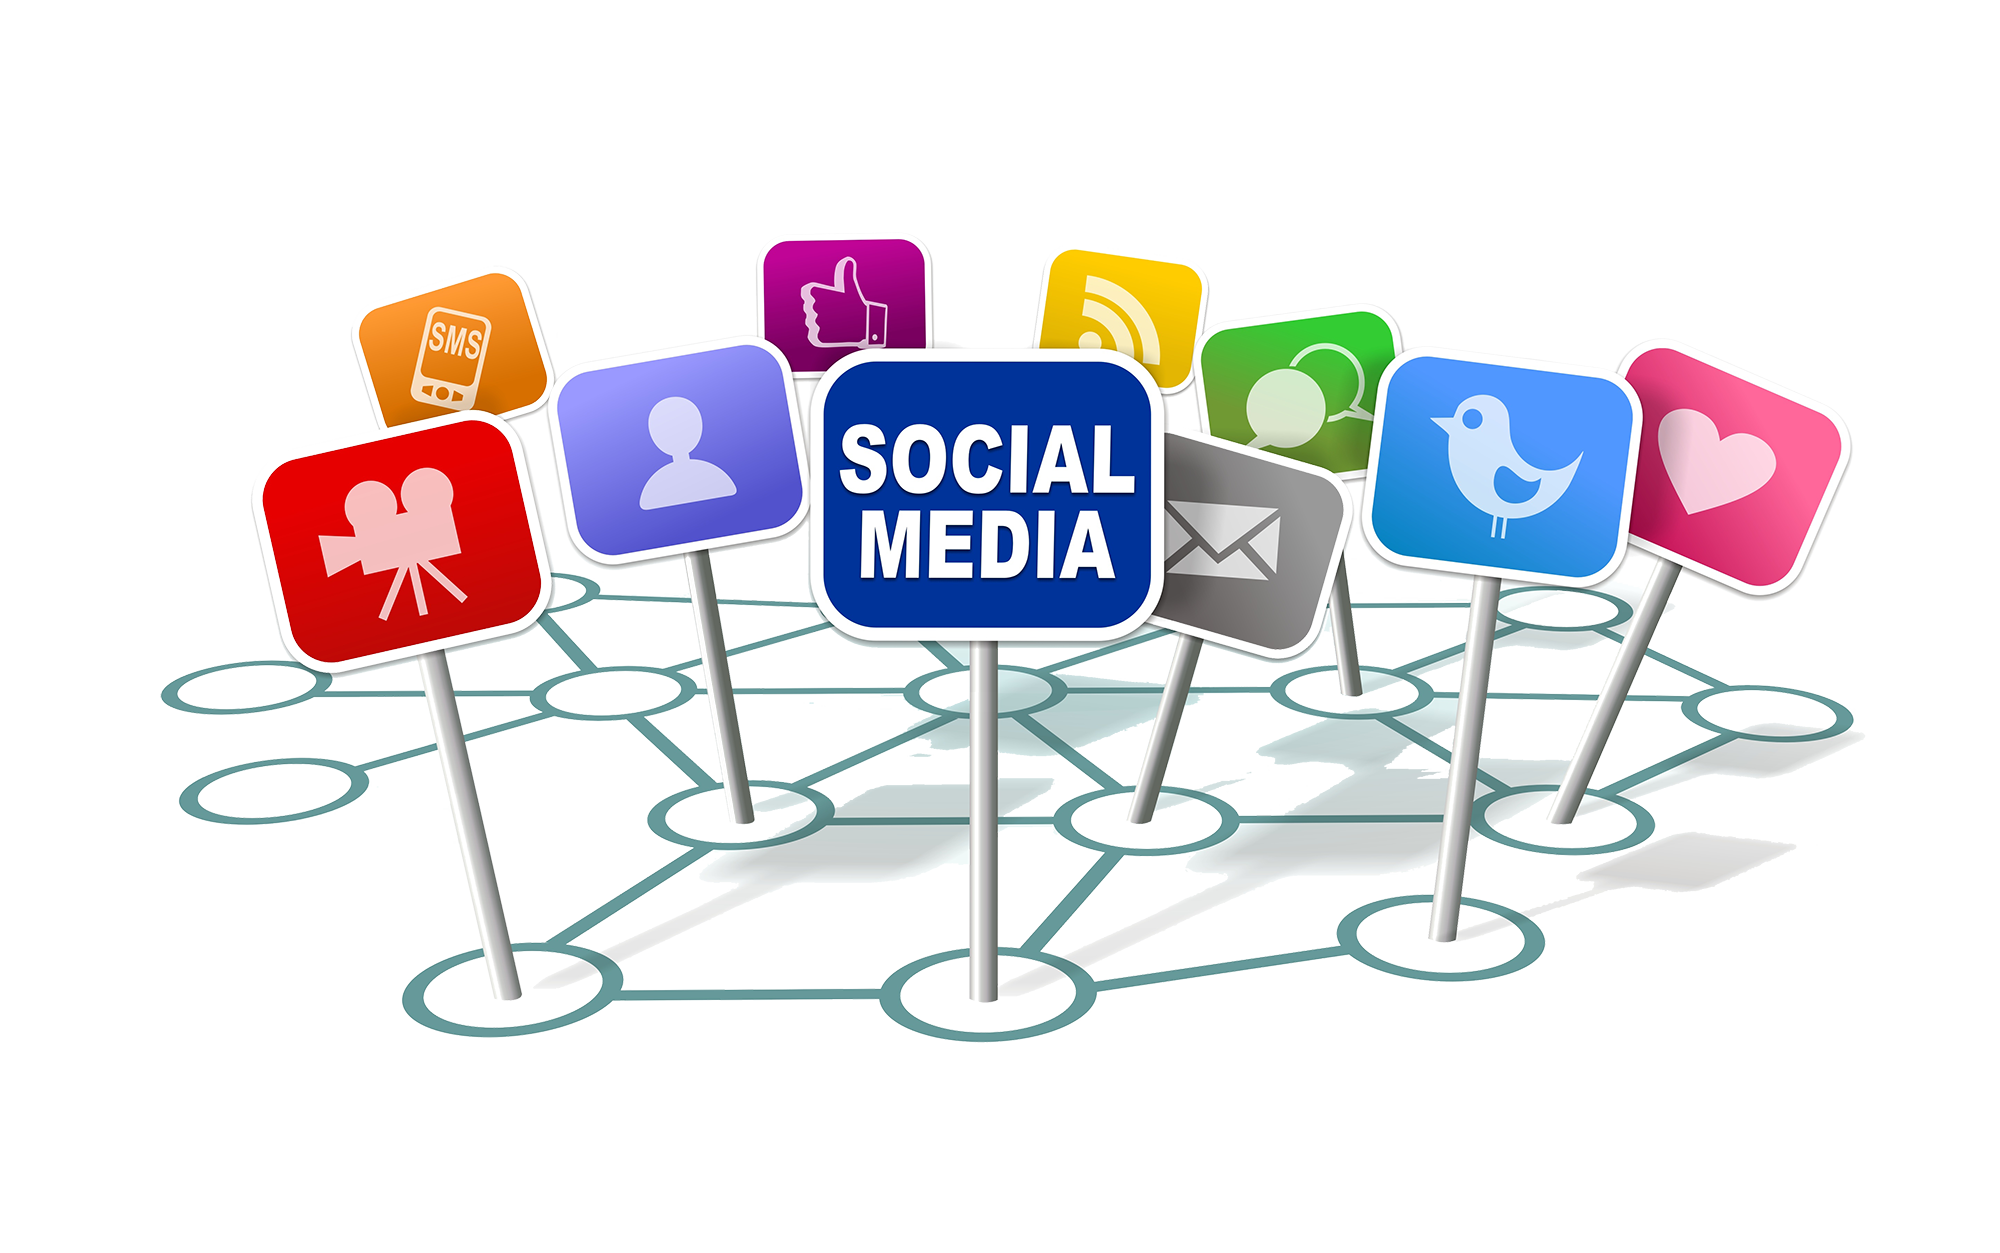 social media marketing marketing essay Nowadays, social media, which has changed the way people connect, discover, and share information, has becomes a major marketing tactic .